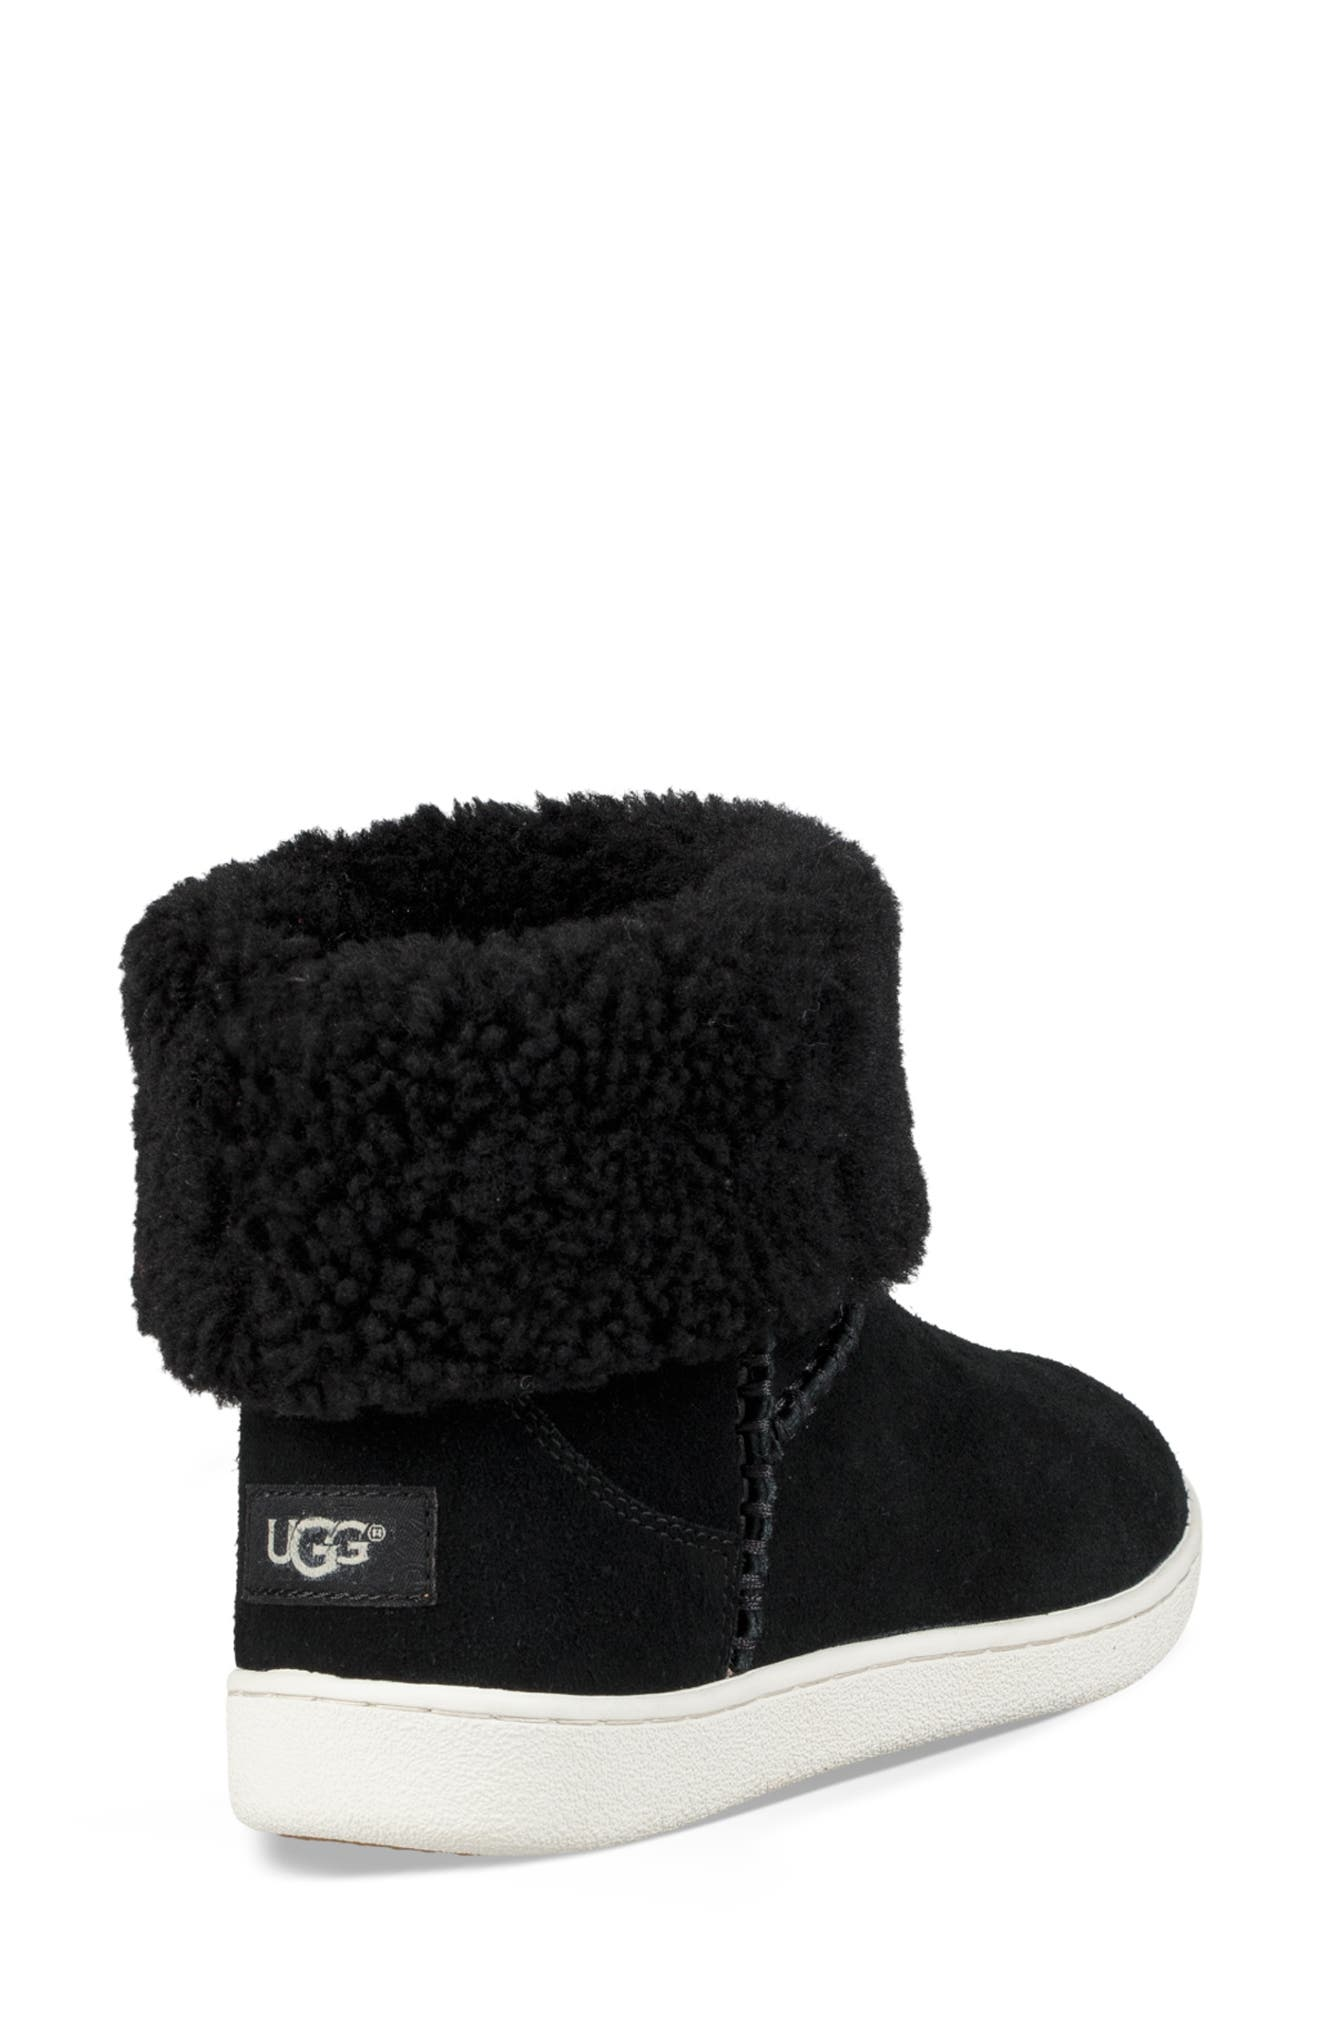 UGG<SUP>®</SUP>, Mika Classic Genuine Shearling Sneaker, Alternate thumbnail 3, color, BLACK